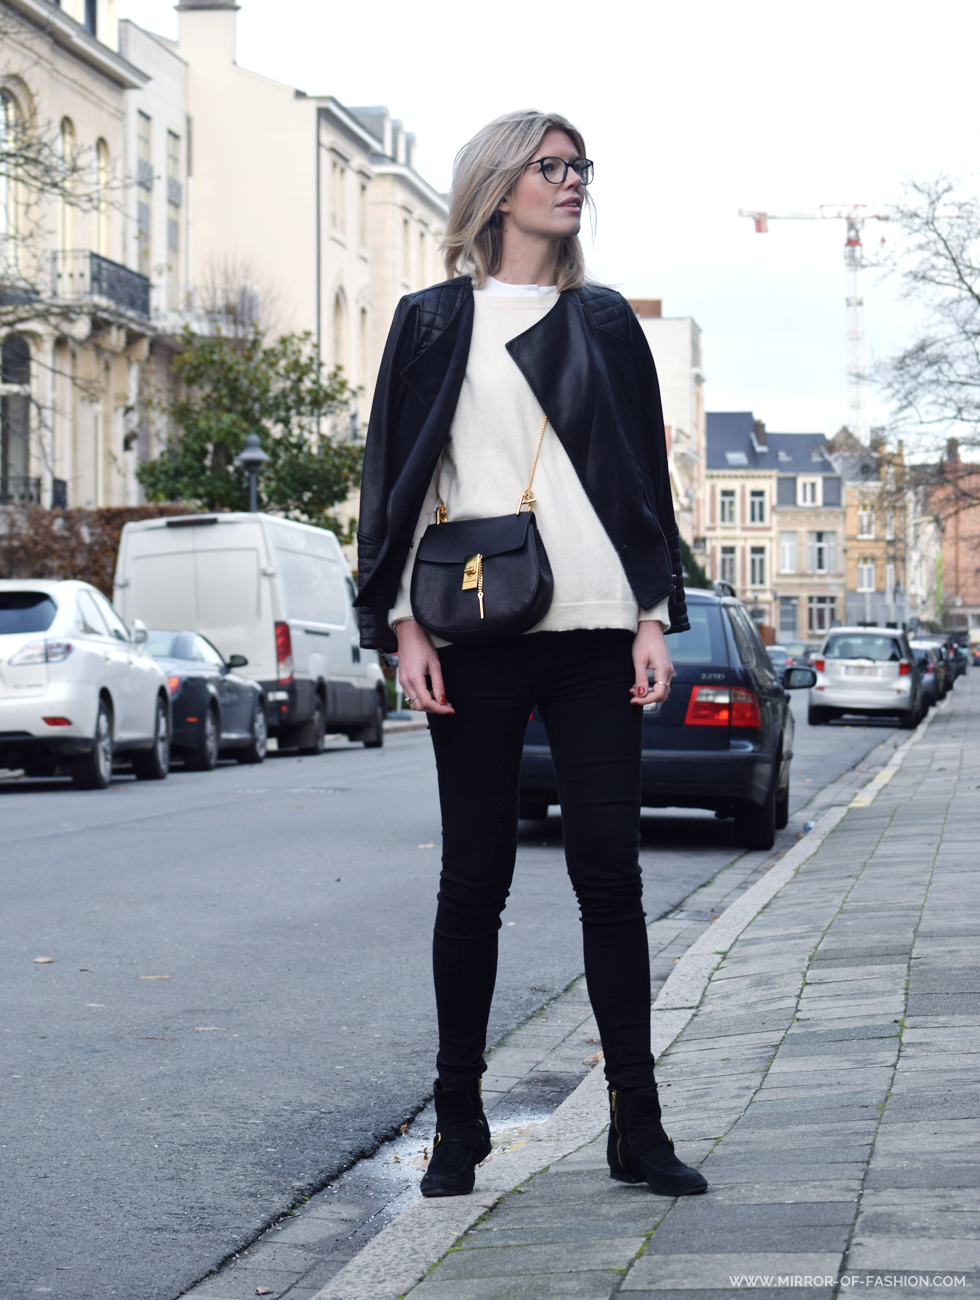 Outfit of the day, Chanel, Halé Bob, COS, By Malene Birger, Chloé, Jbrand, isabel marant, ootd, winter, Drew bag